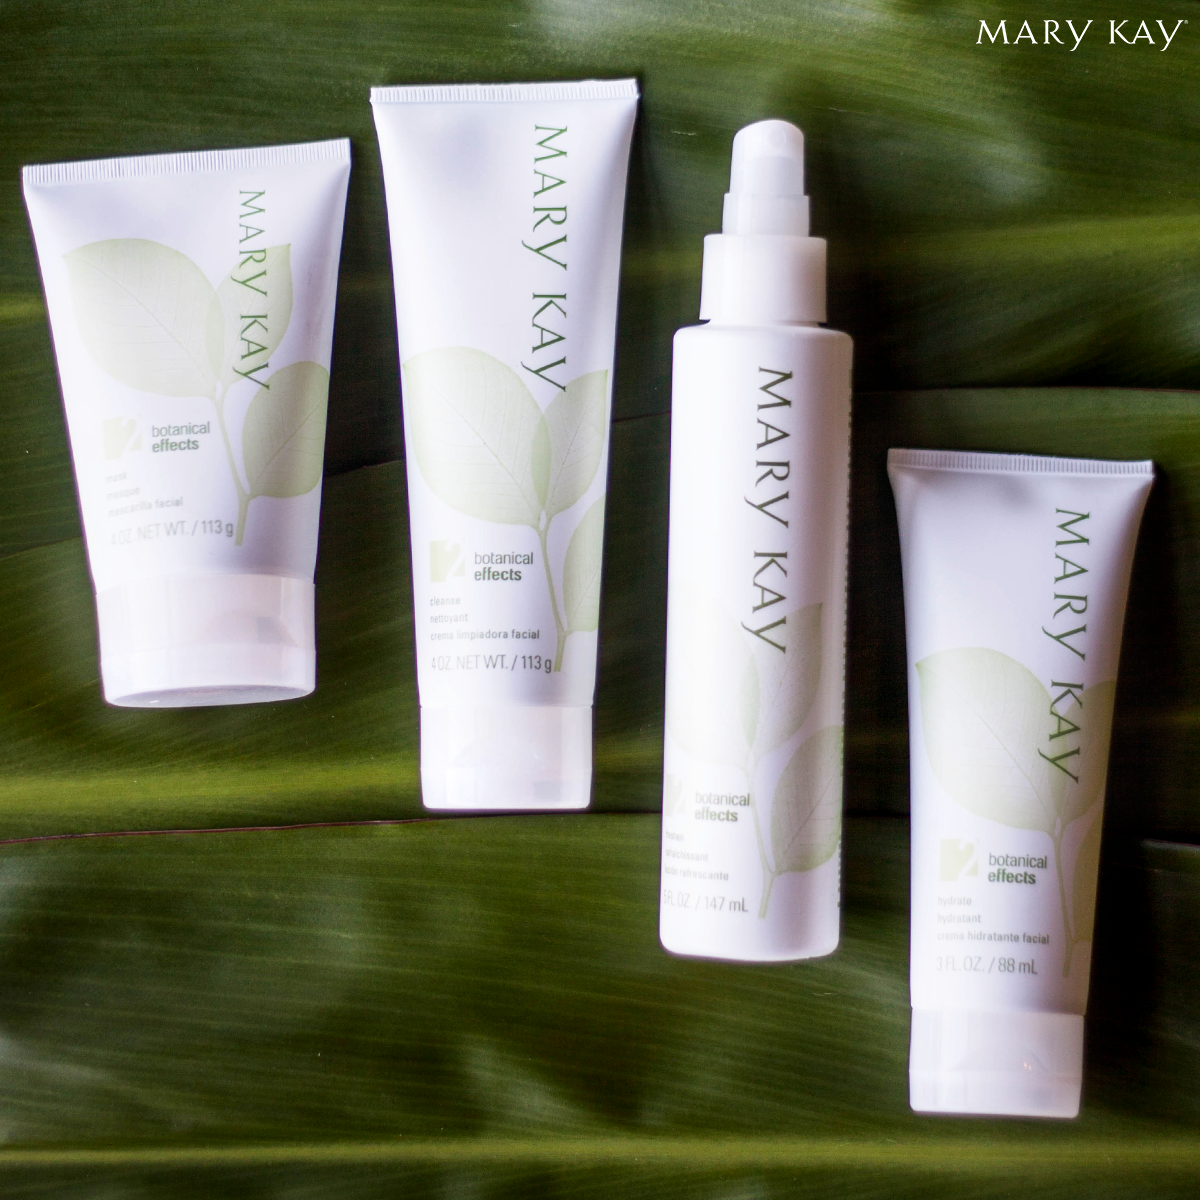 mary kay inc essay Mary kay announced the winners of its 50th anniversary one woman cantm global makeover contest to celebrate women's beauty and the beauty of giving by granting.